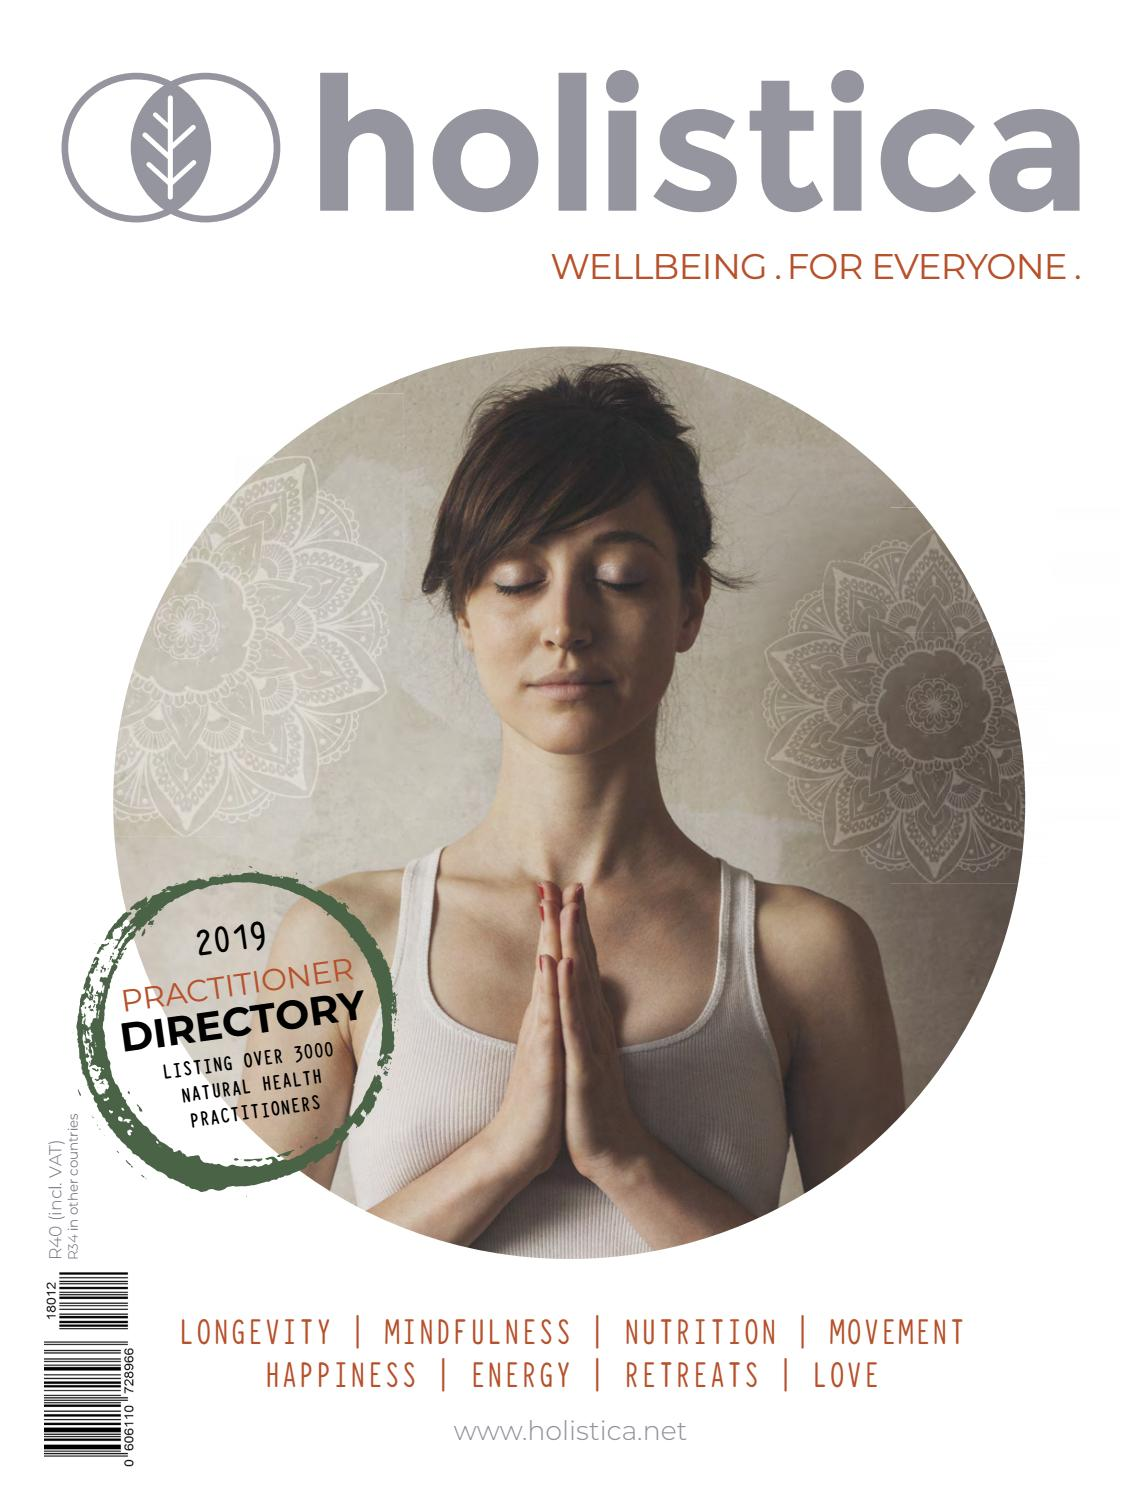 Holistica 2019 Practitioner Directory by Holistica - issuu